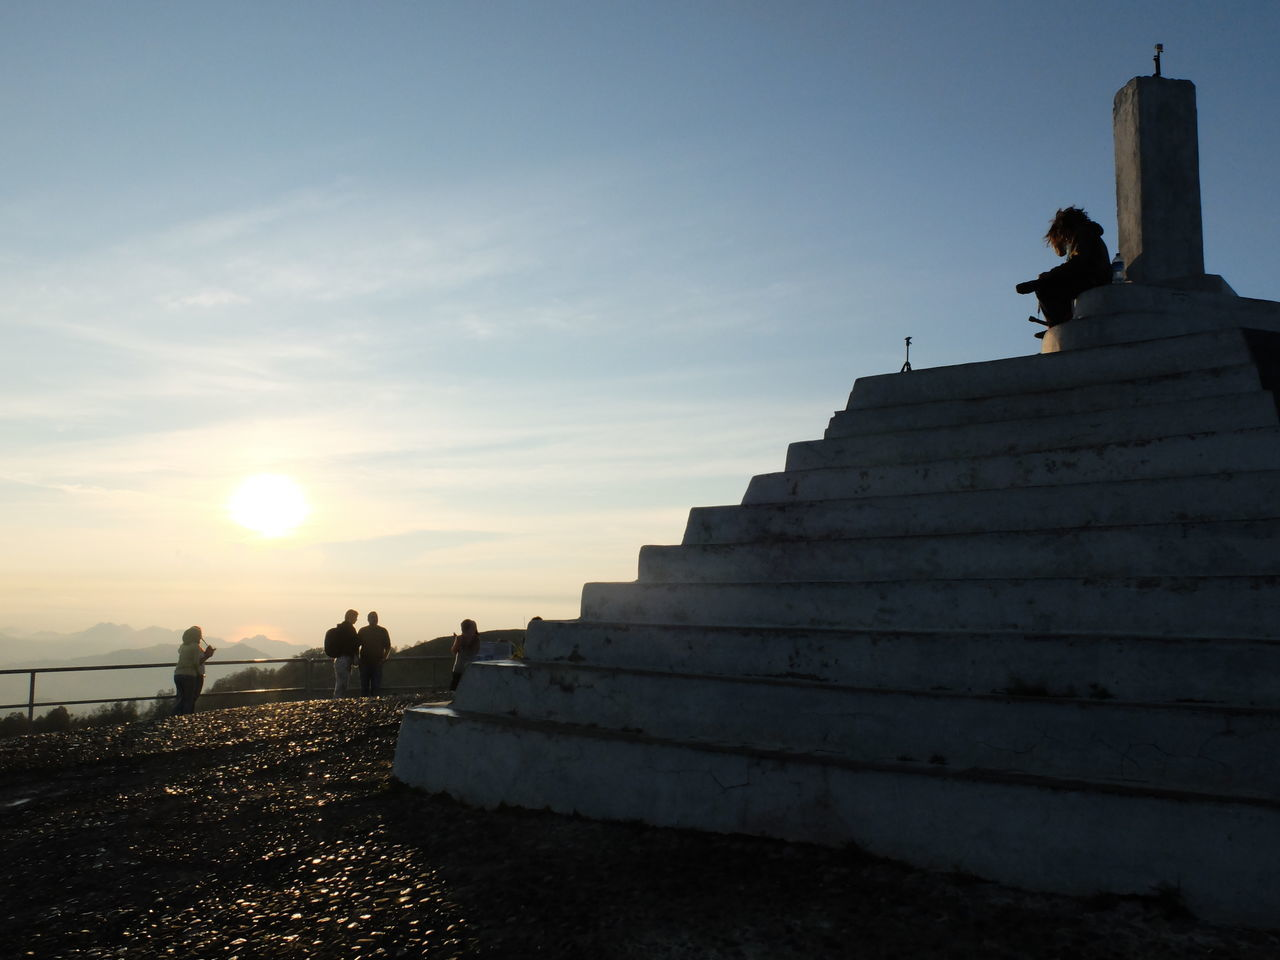 Watching the sunrise on Kelimutu Volcano, Indonesia. Architecture Day Ende INDONESIA Indonesia_photography Kelimutu Nature Outdoors RASTA Roadtrip Sculpture Sky Staircase Statue Steps Steps And Staircases Sunrise Top Travel Trekking Volcano